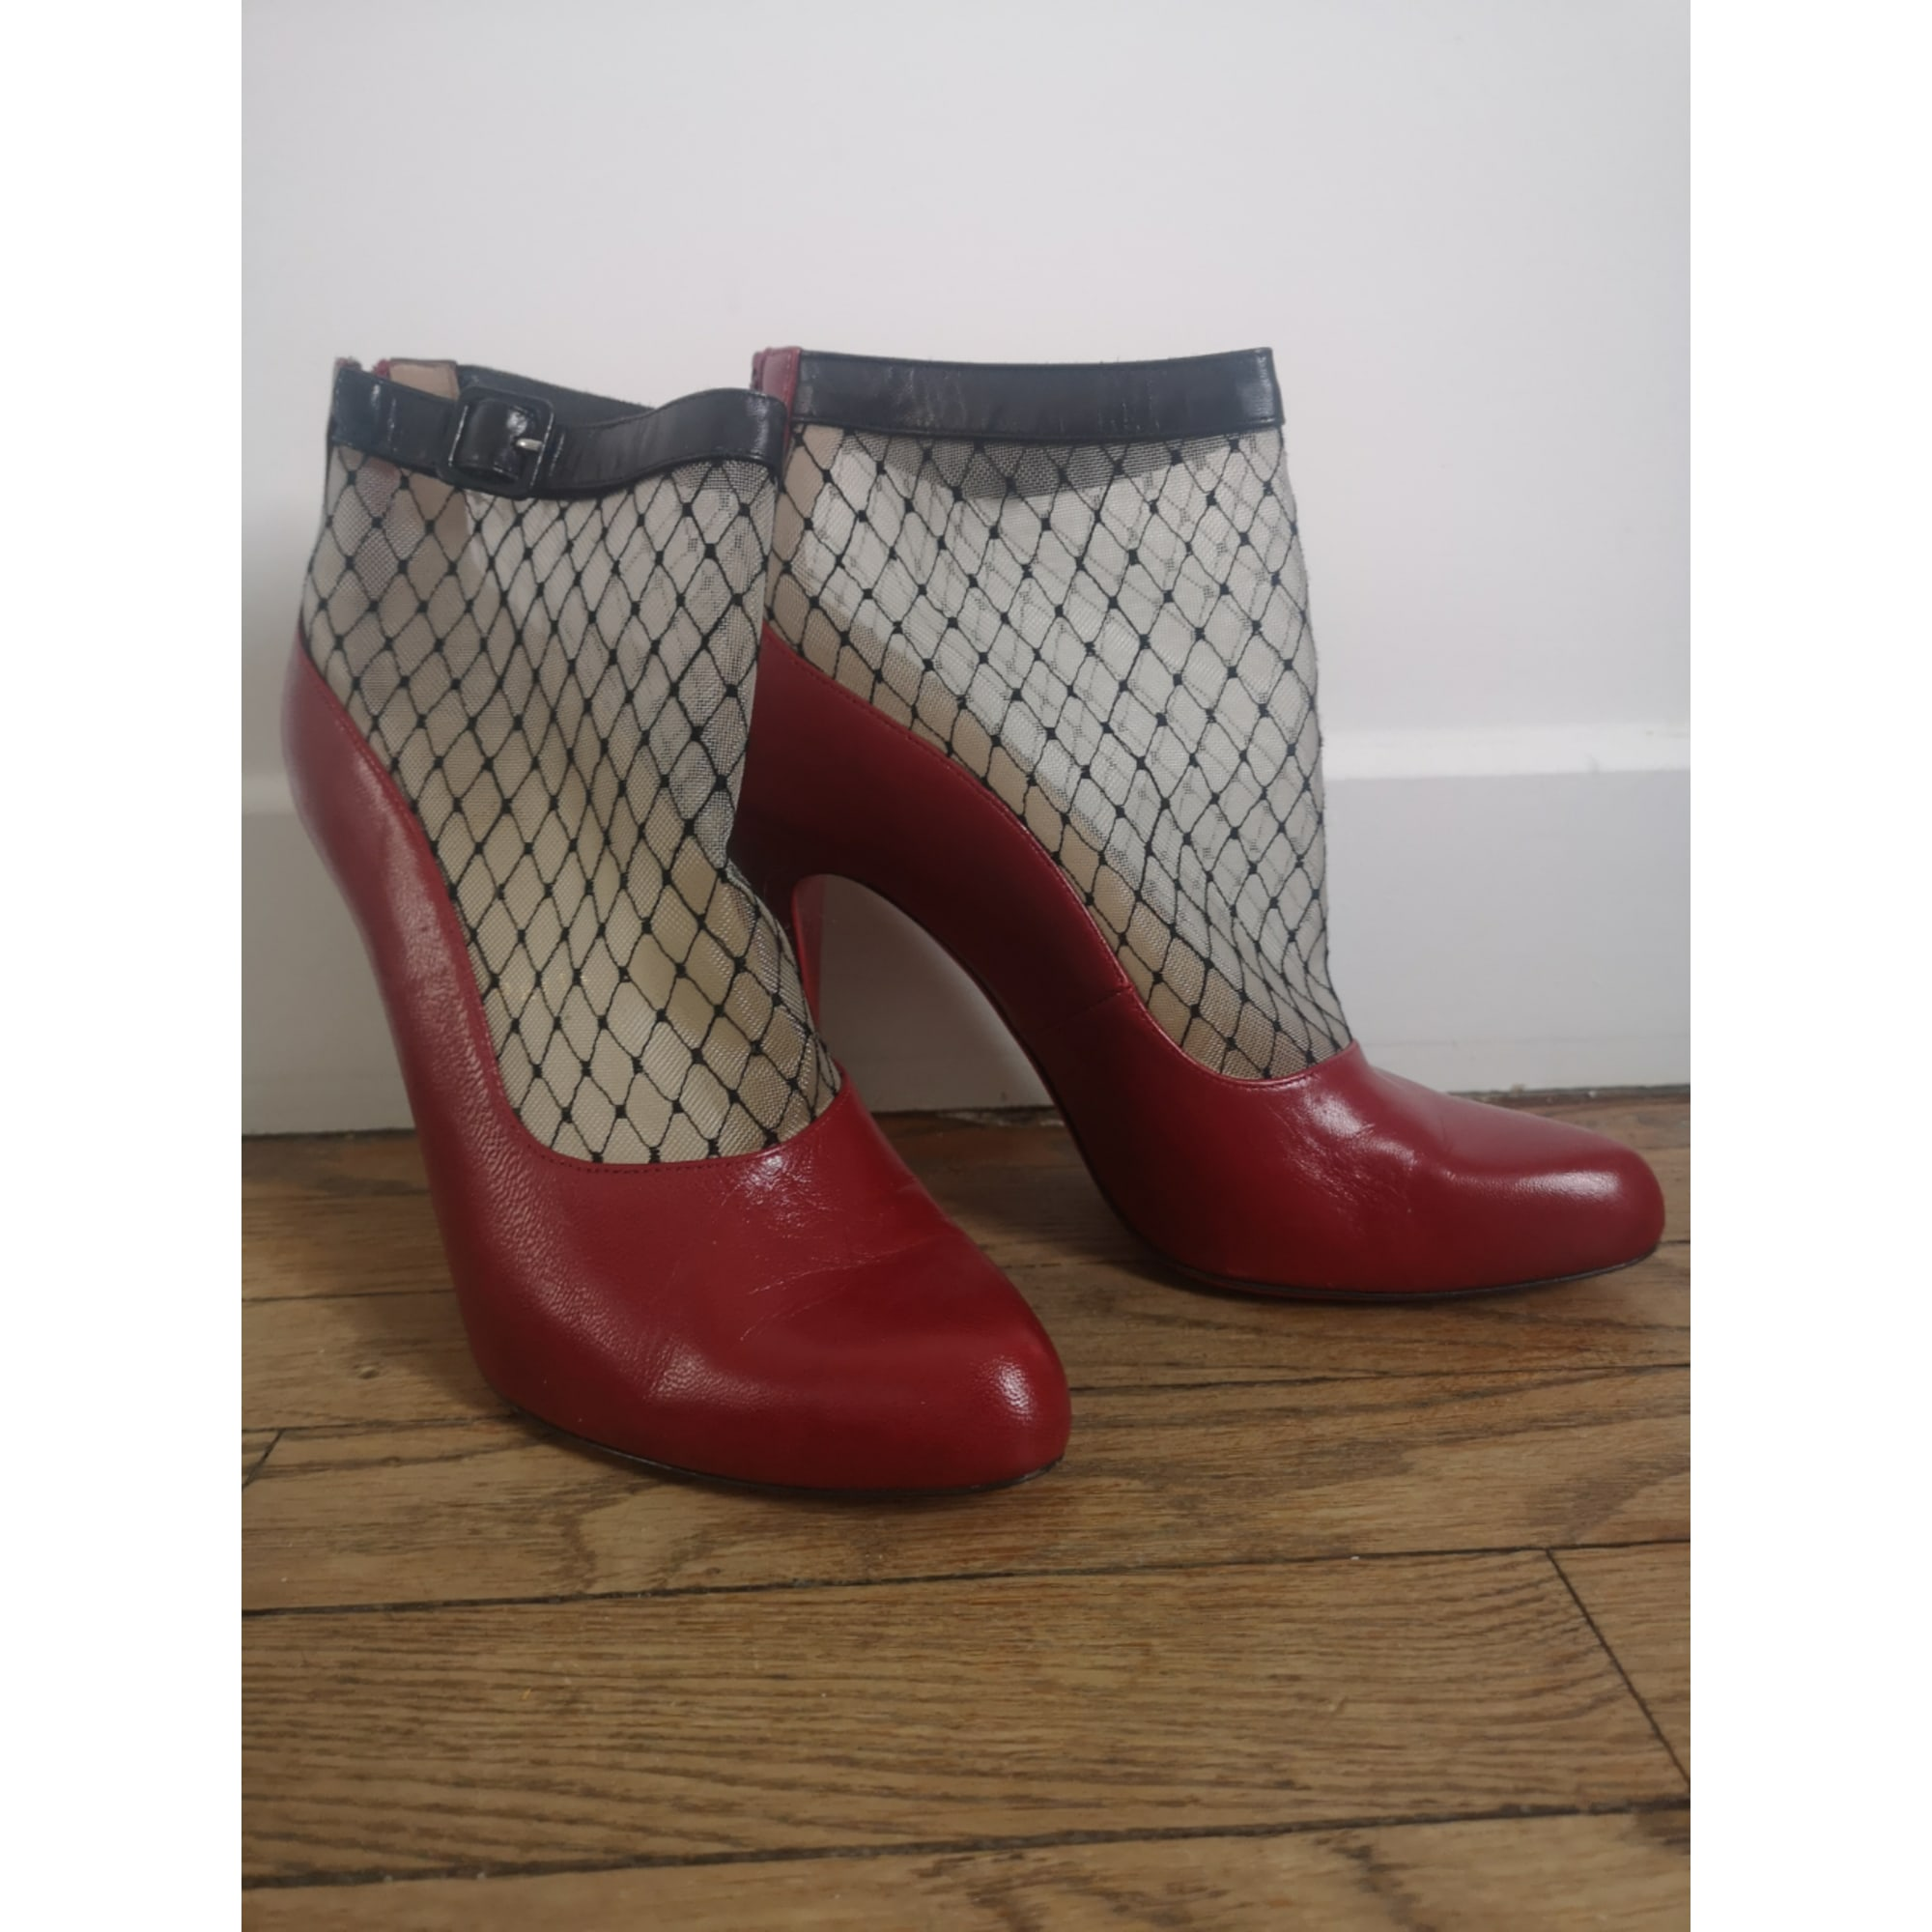 High Heel Ankle Boots CHRISTIAN LOUBOUTIN Red, burgundy